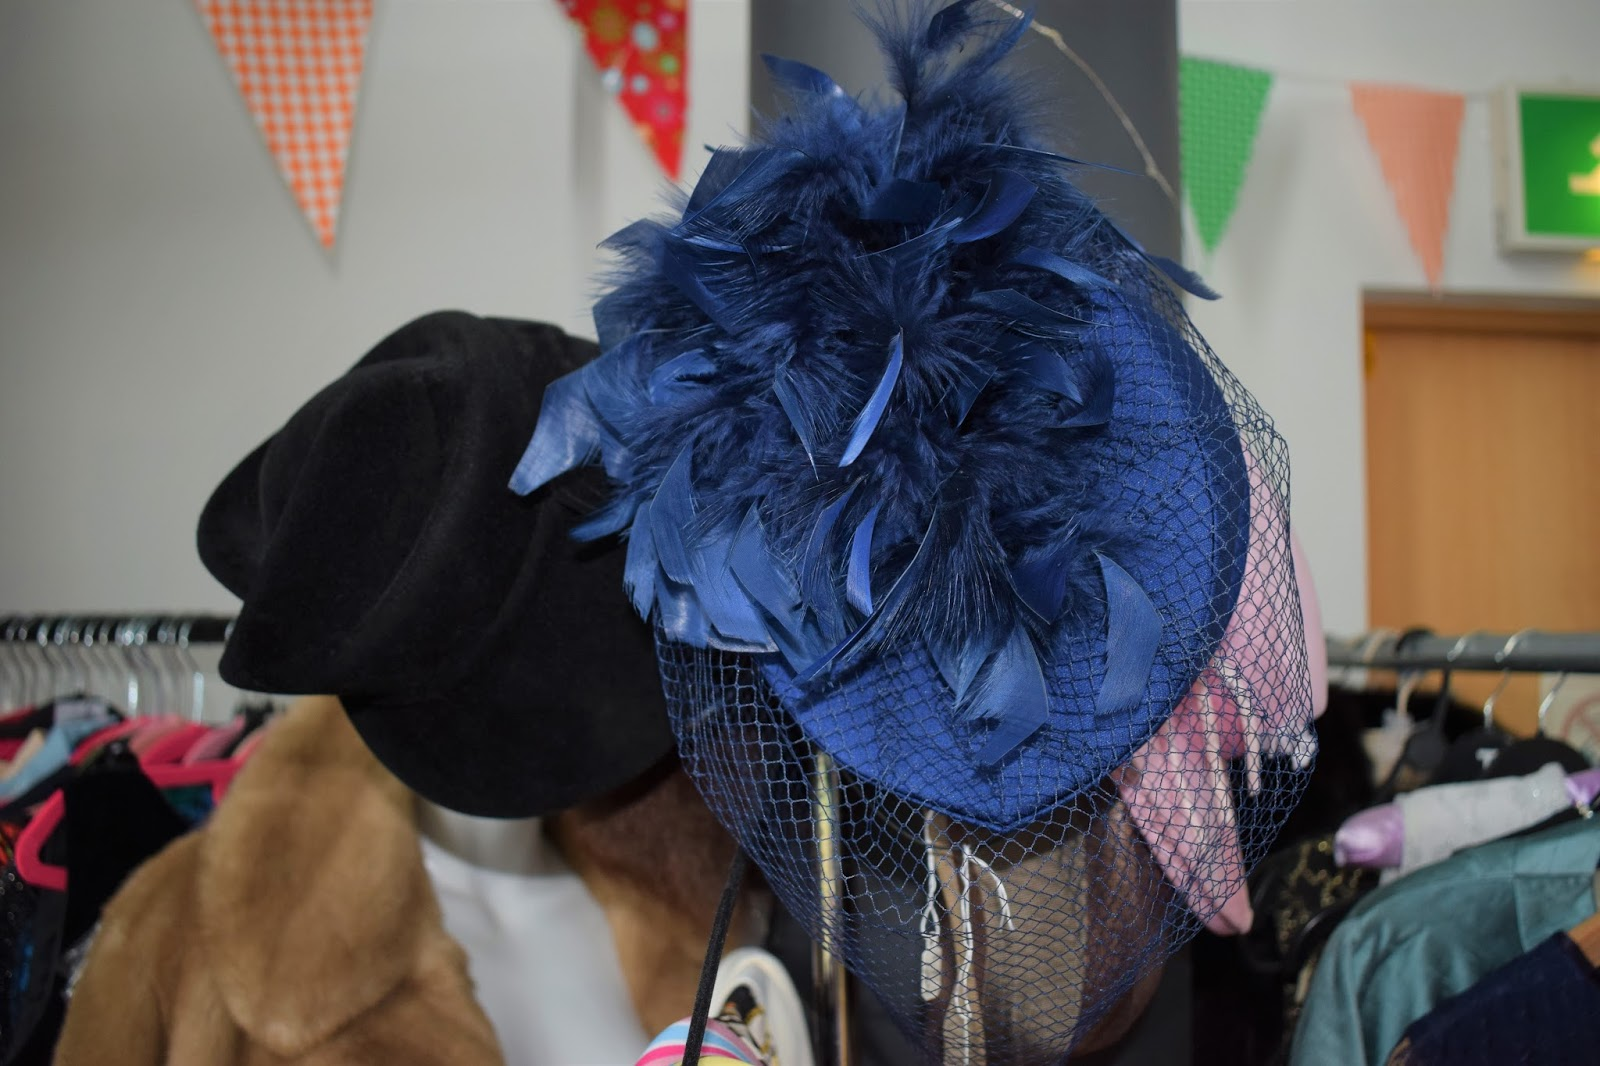 Specifically Vintage market event, The Quay Dundee, charity event Dundee, Vintage afternoon tea and fashion show, vintage hat with feathers and cage veil